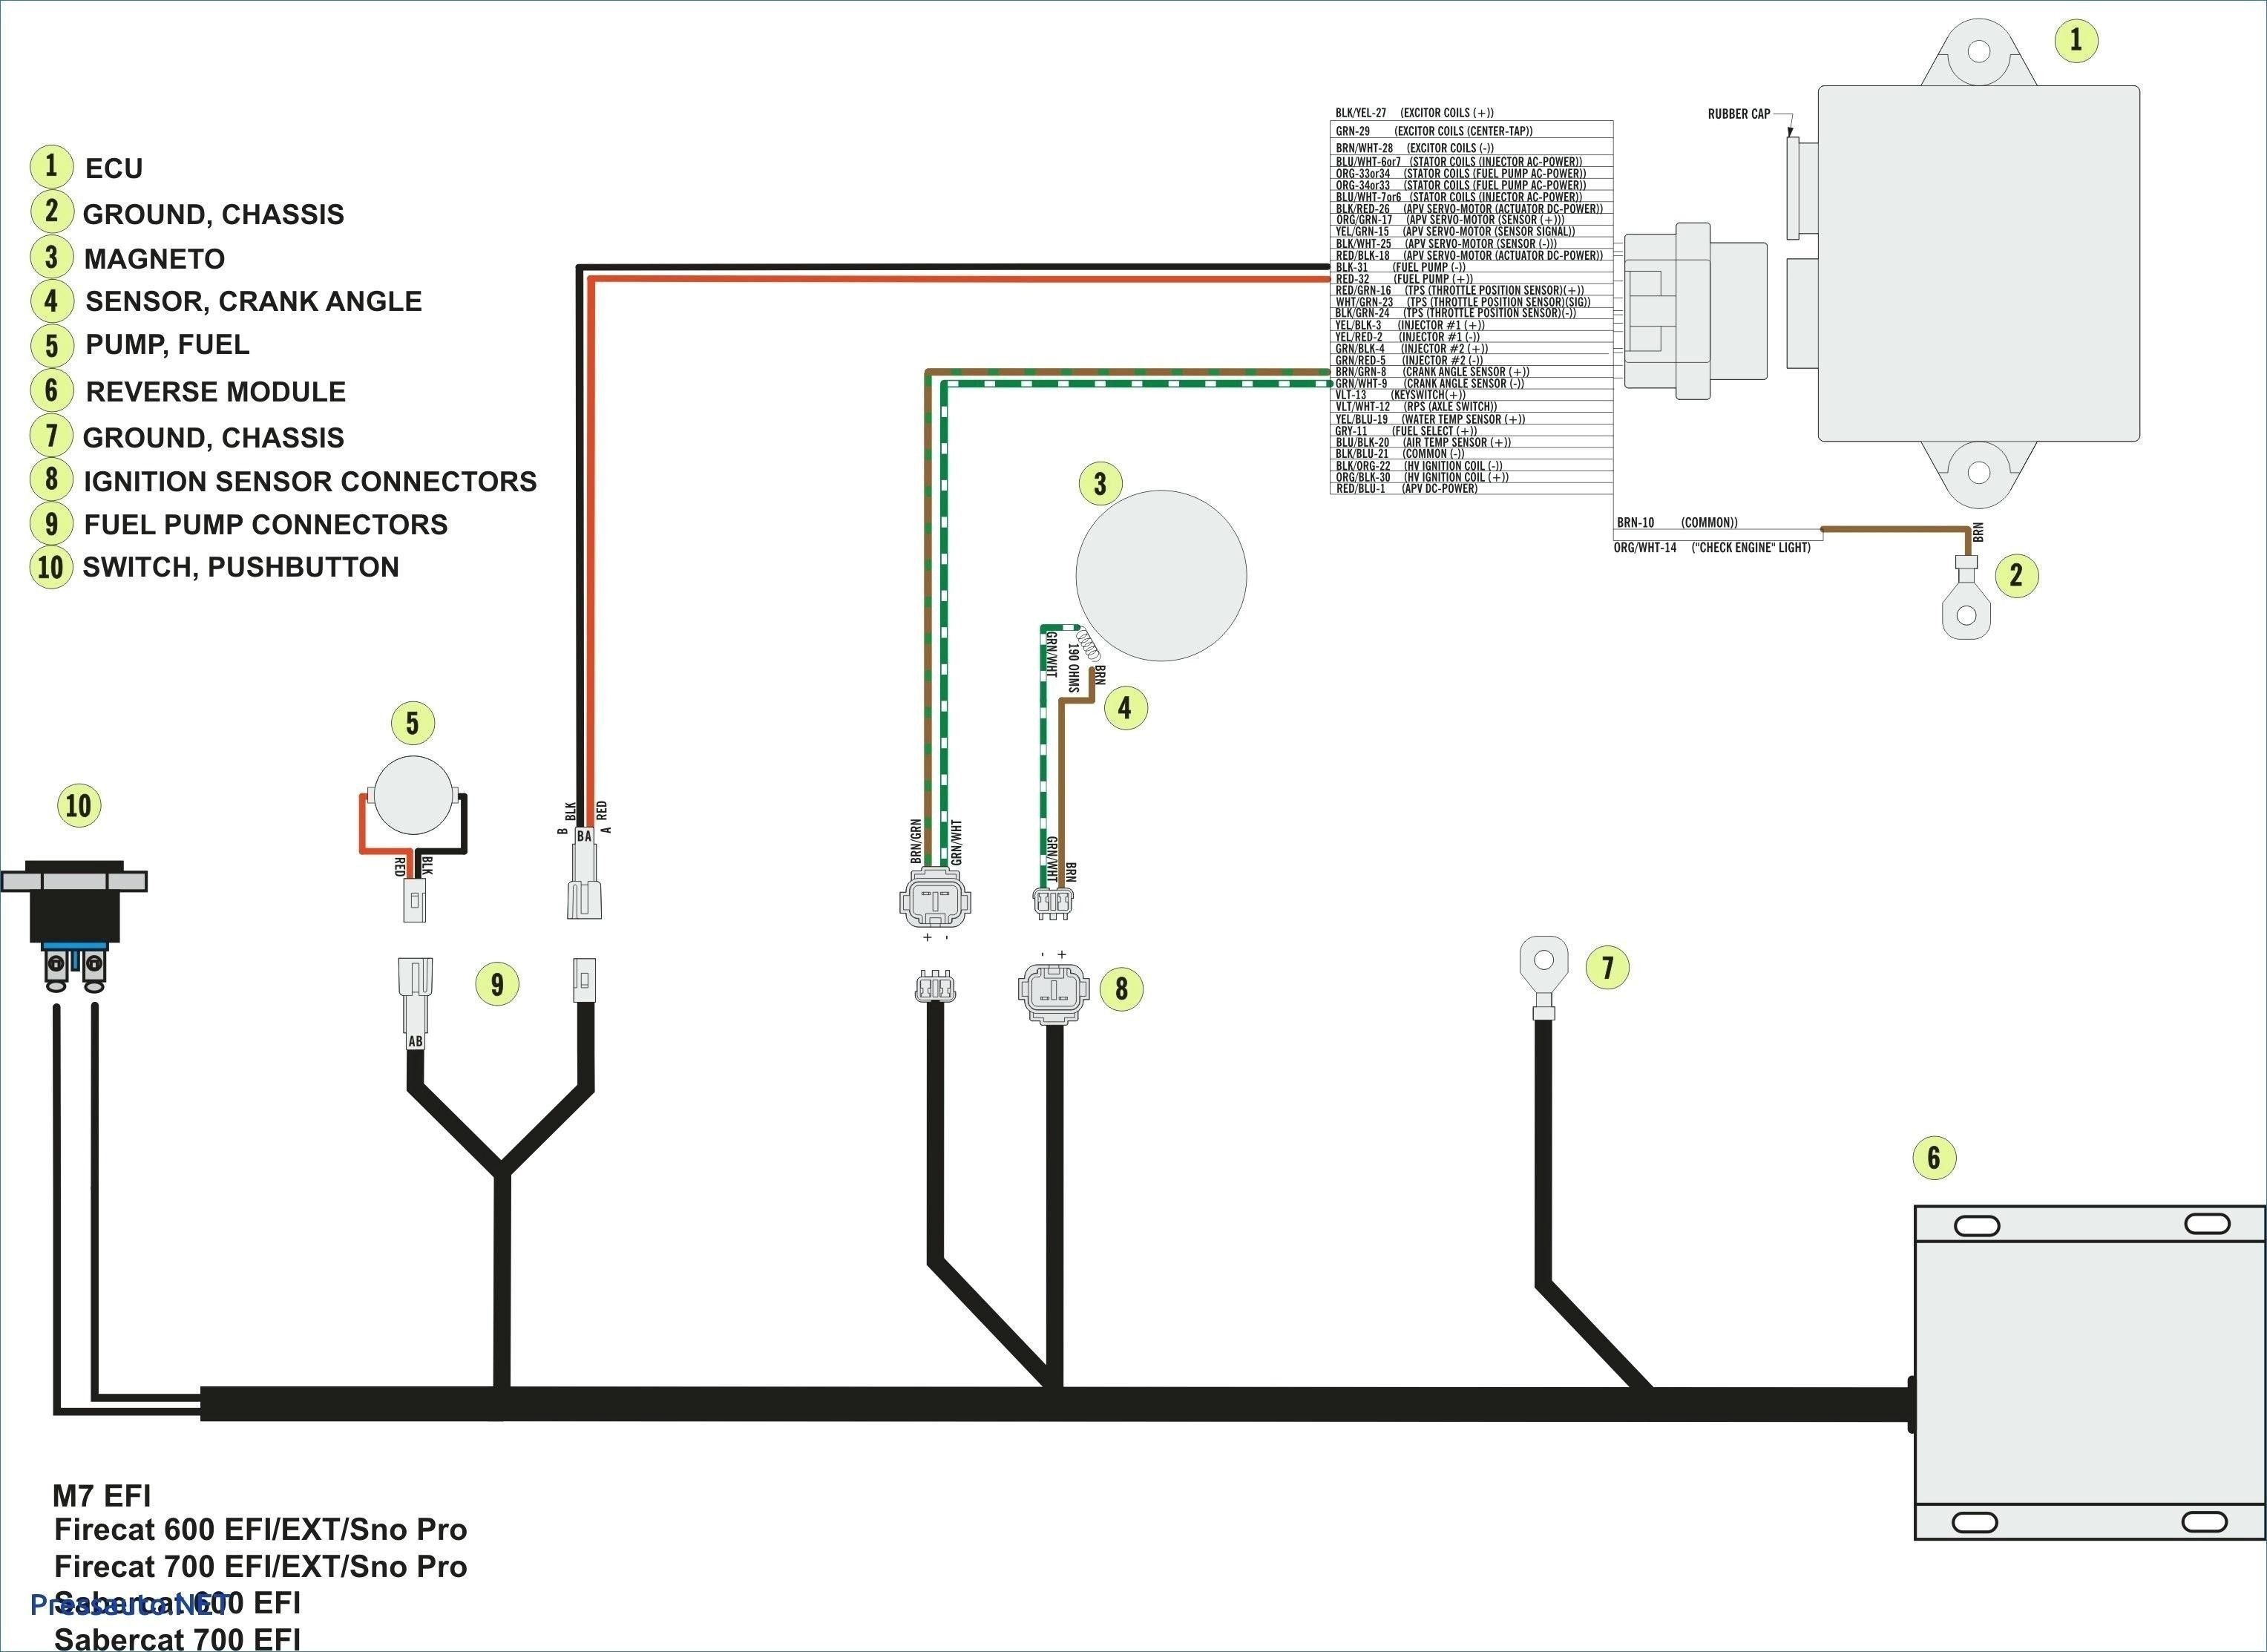 Unique Power Point Wiring Diagram Australia Amazing